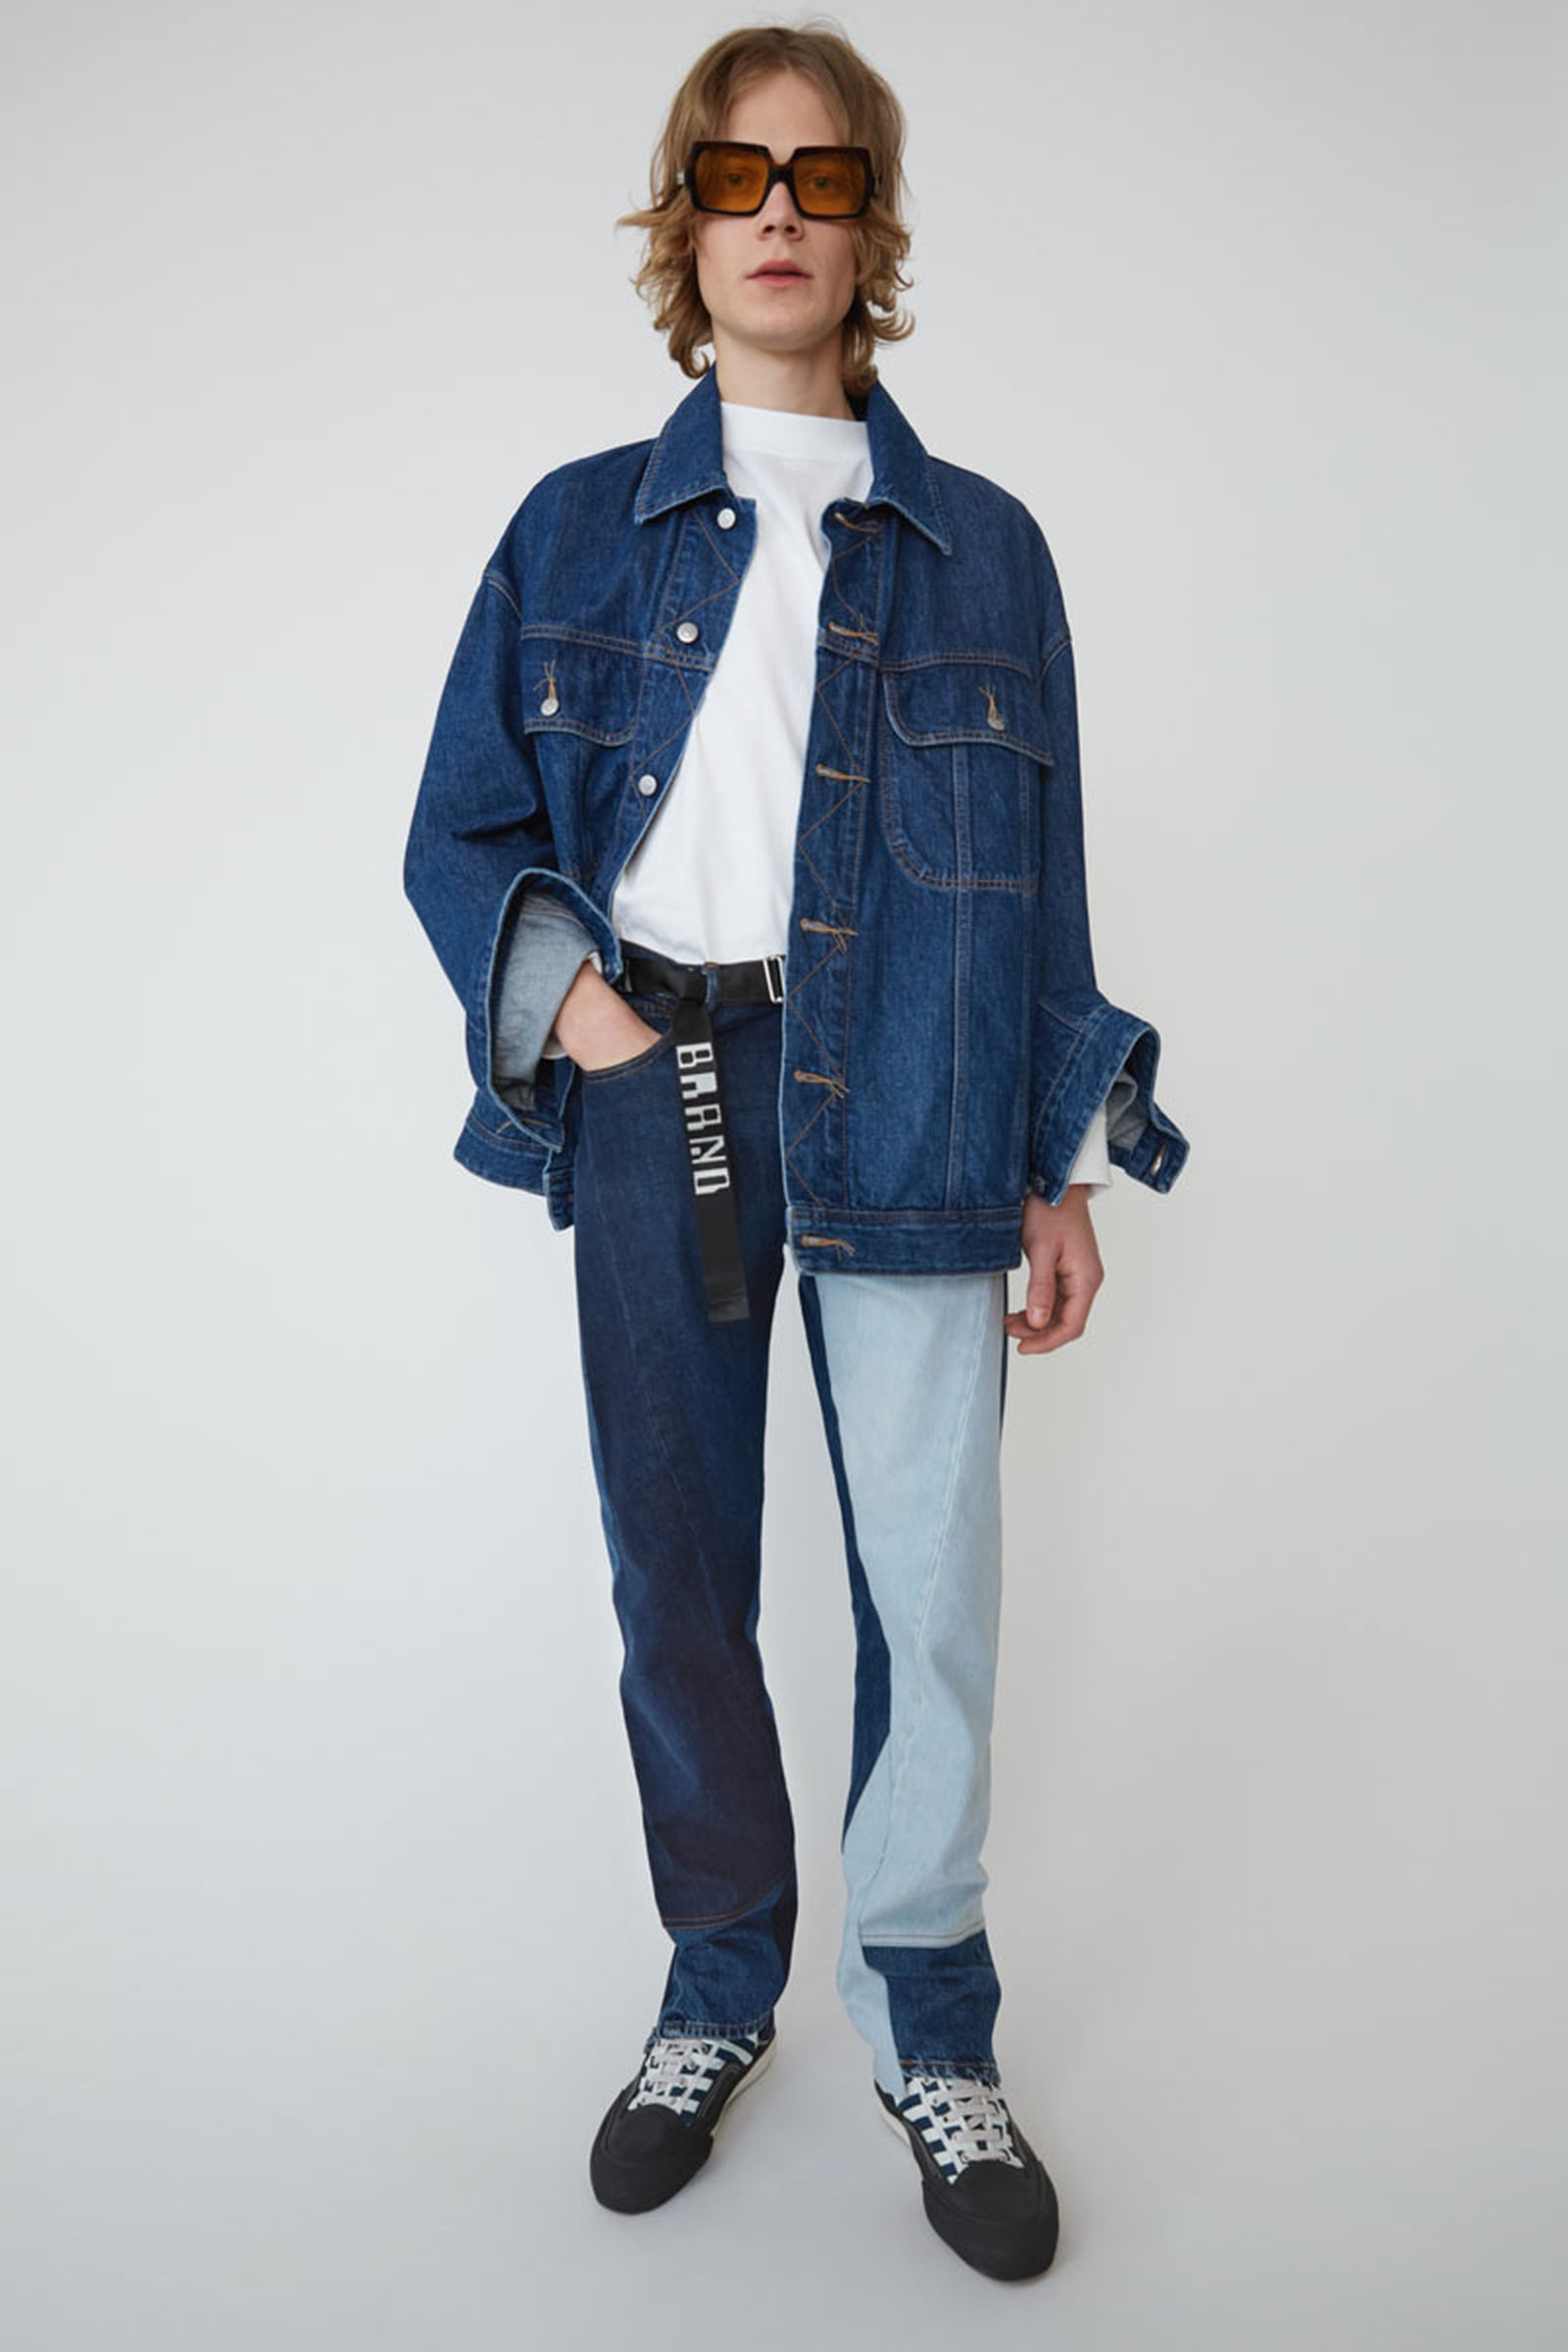 7acne studios ss19 denim collection